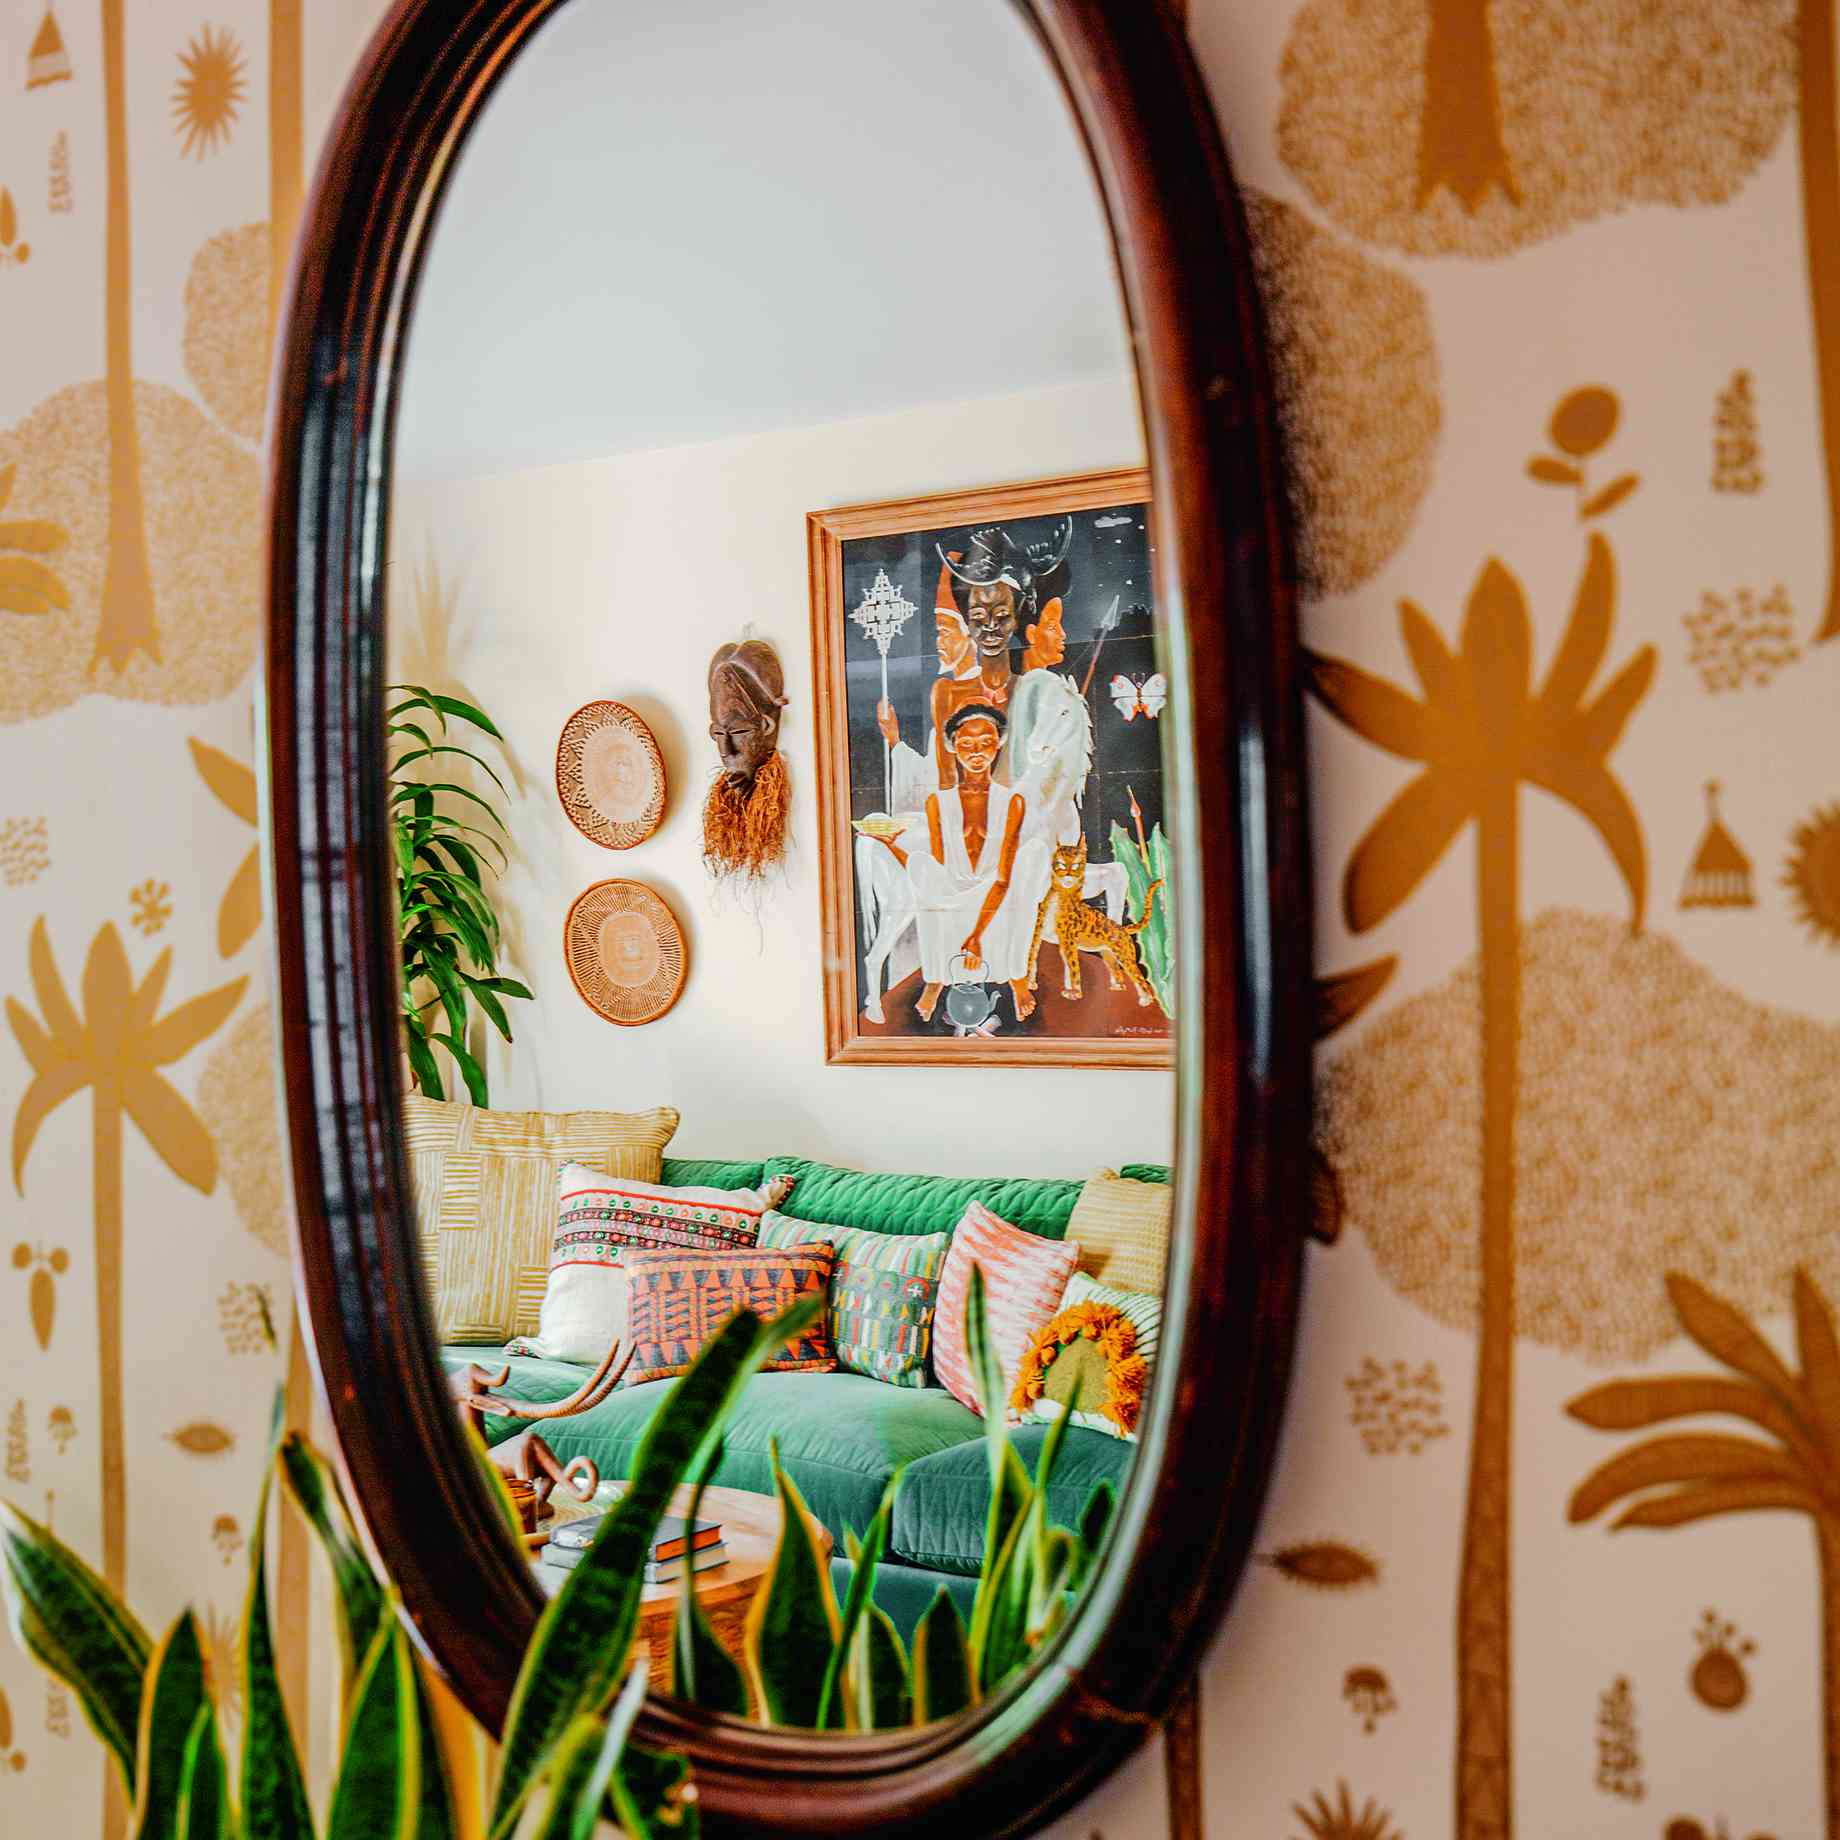 Removable wall paper from Justina Blakeney's Jungalow